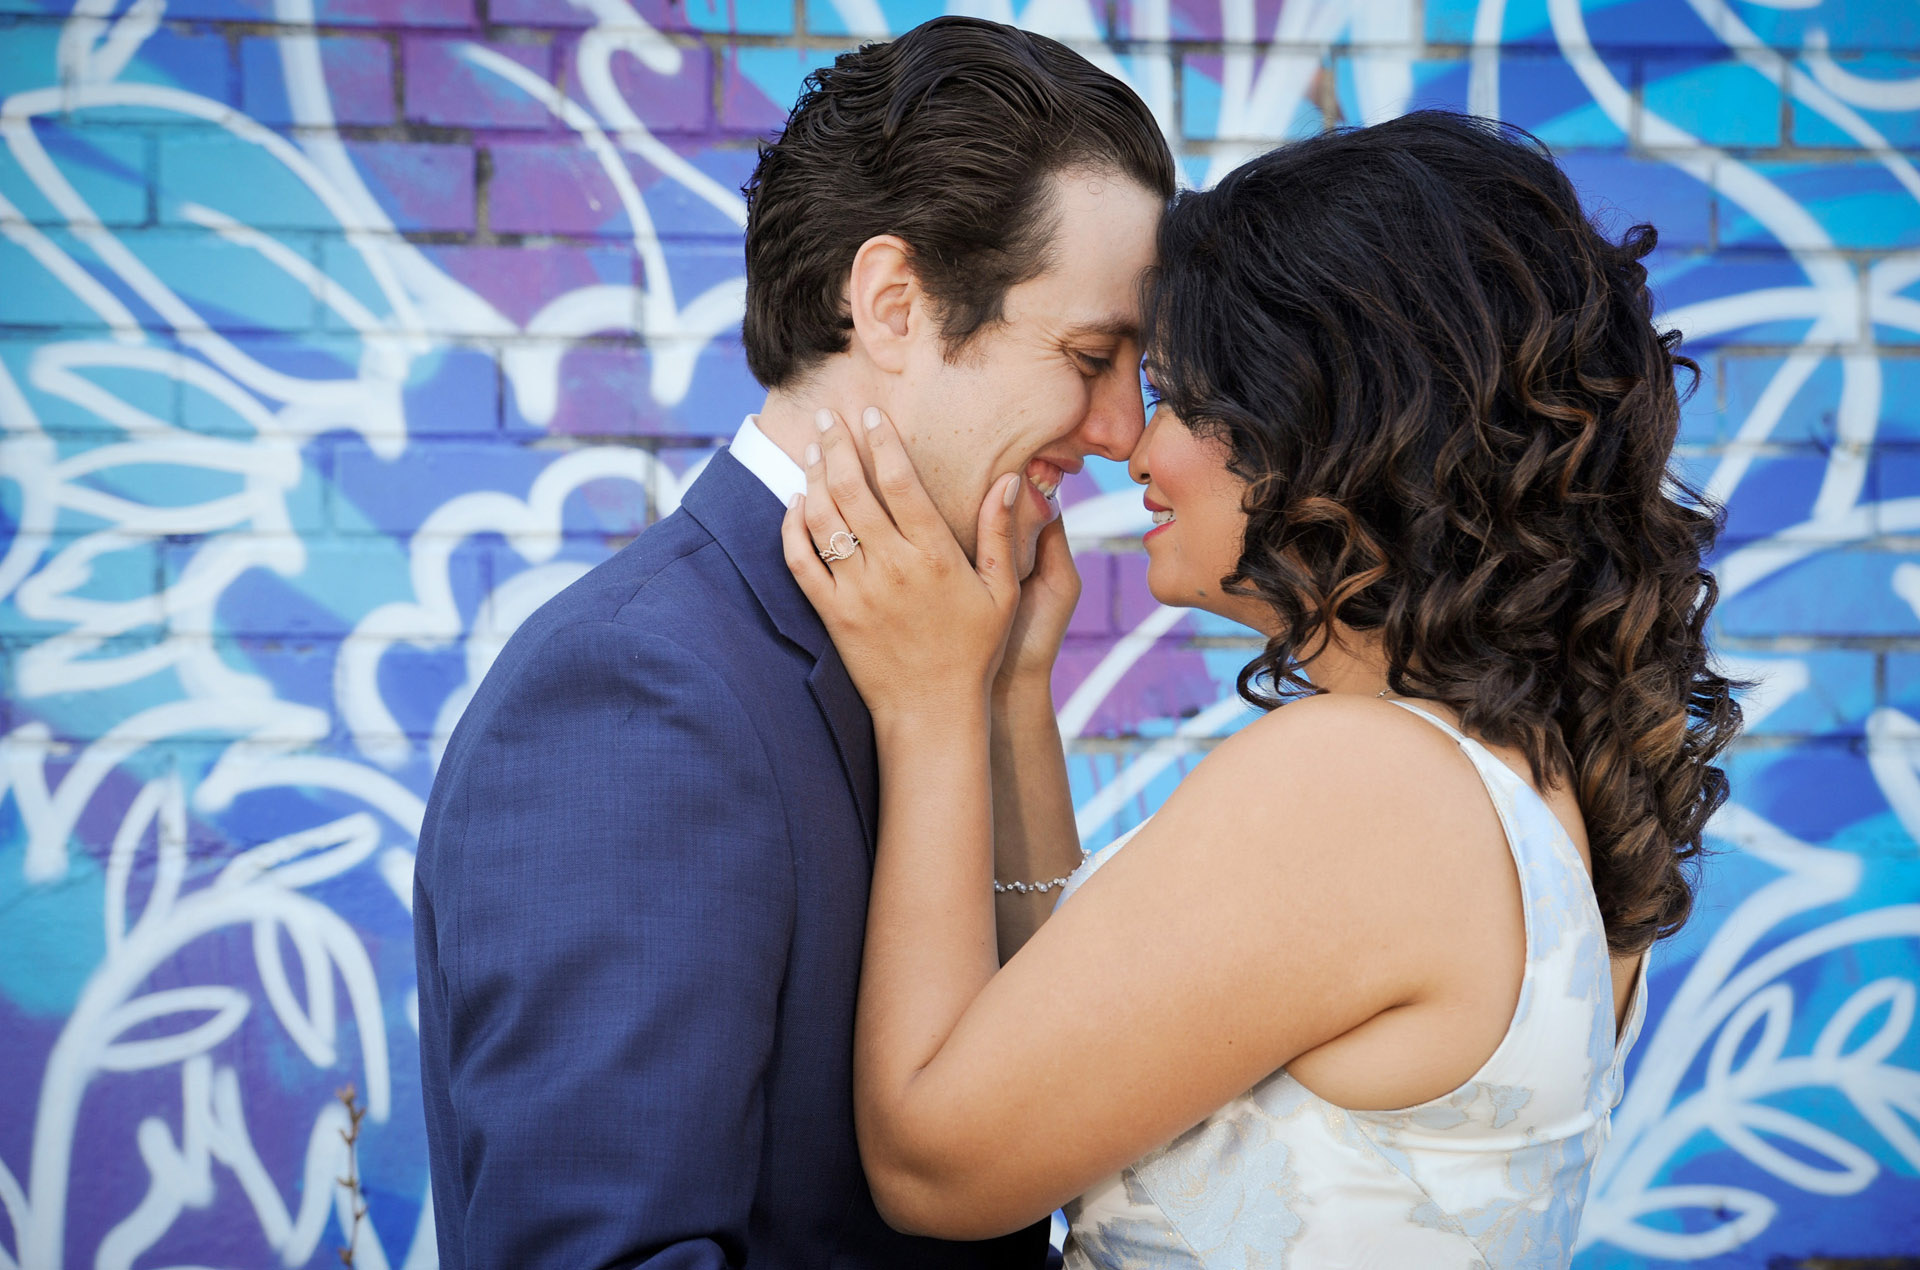 Best Detroit lifestyles photographer's fun and candid engagement photos capture the fun vibe of this couple in the Metro Detroit and Detroit, Michigan area.